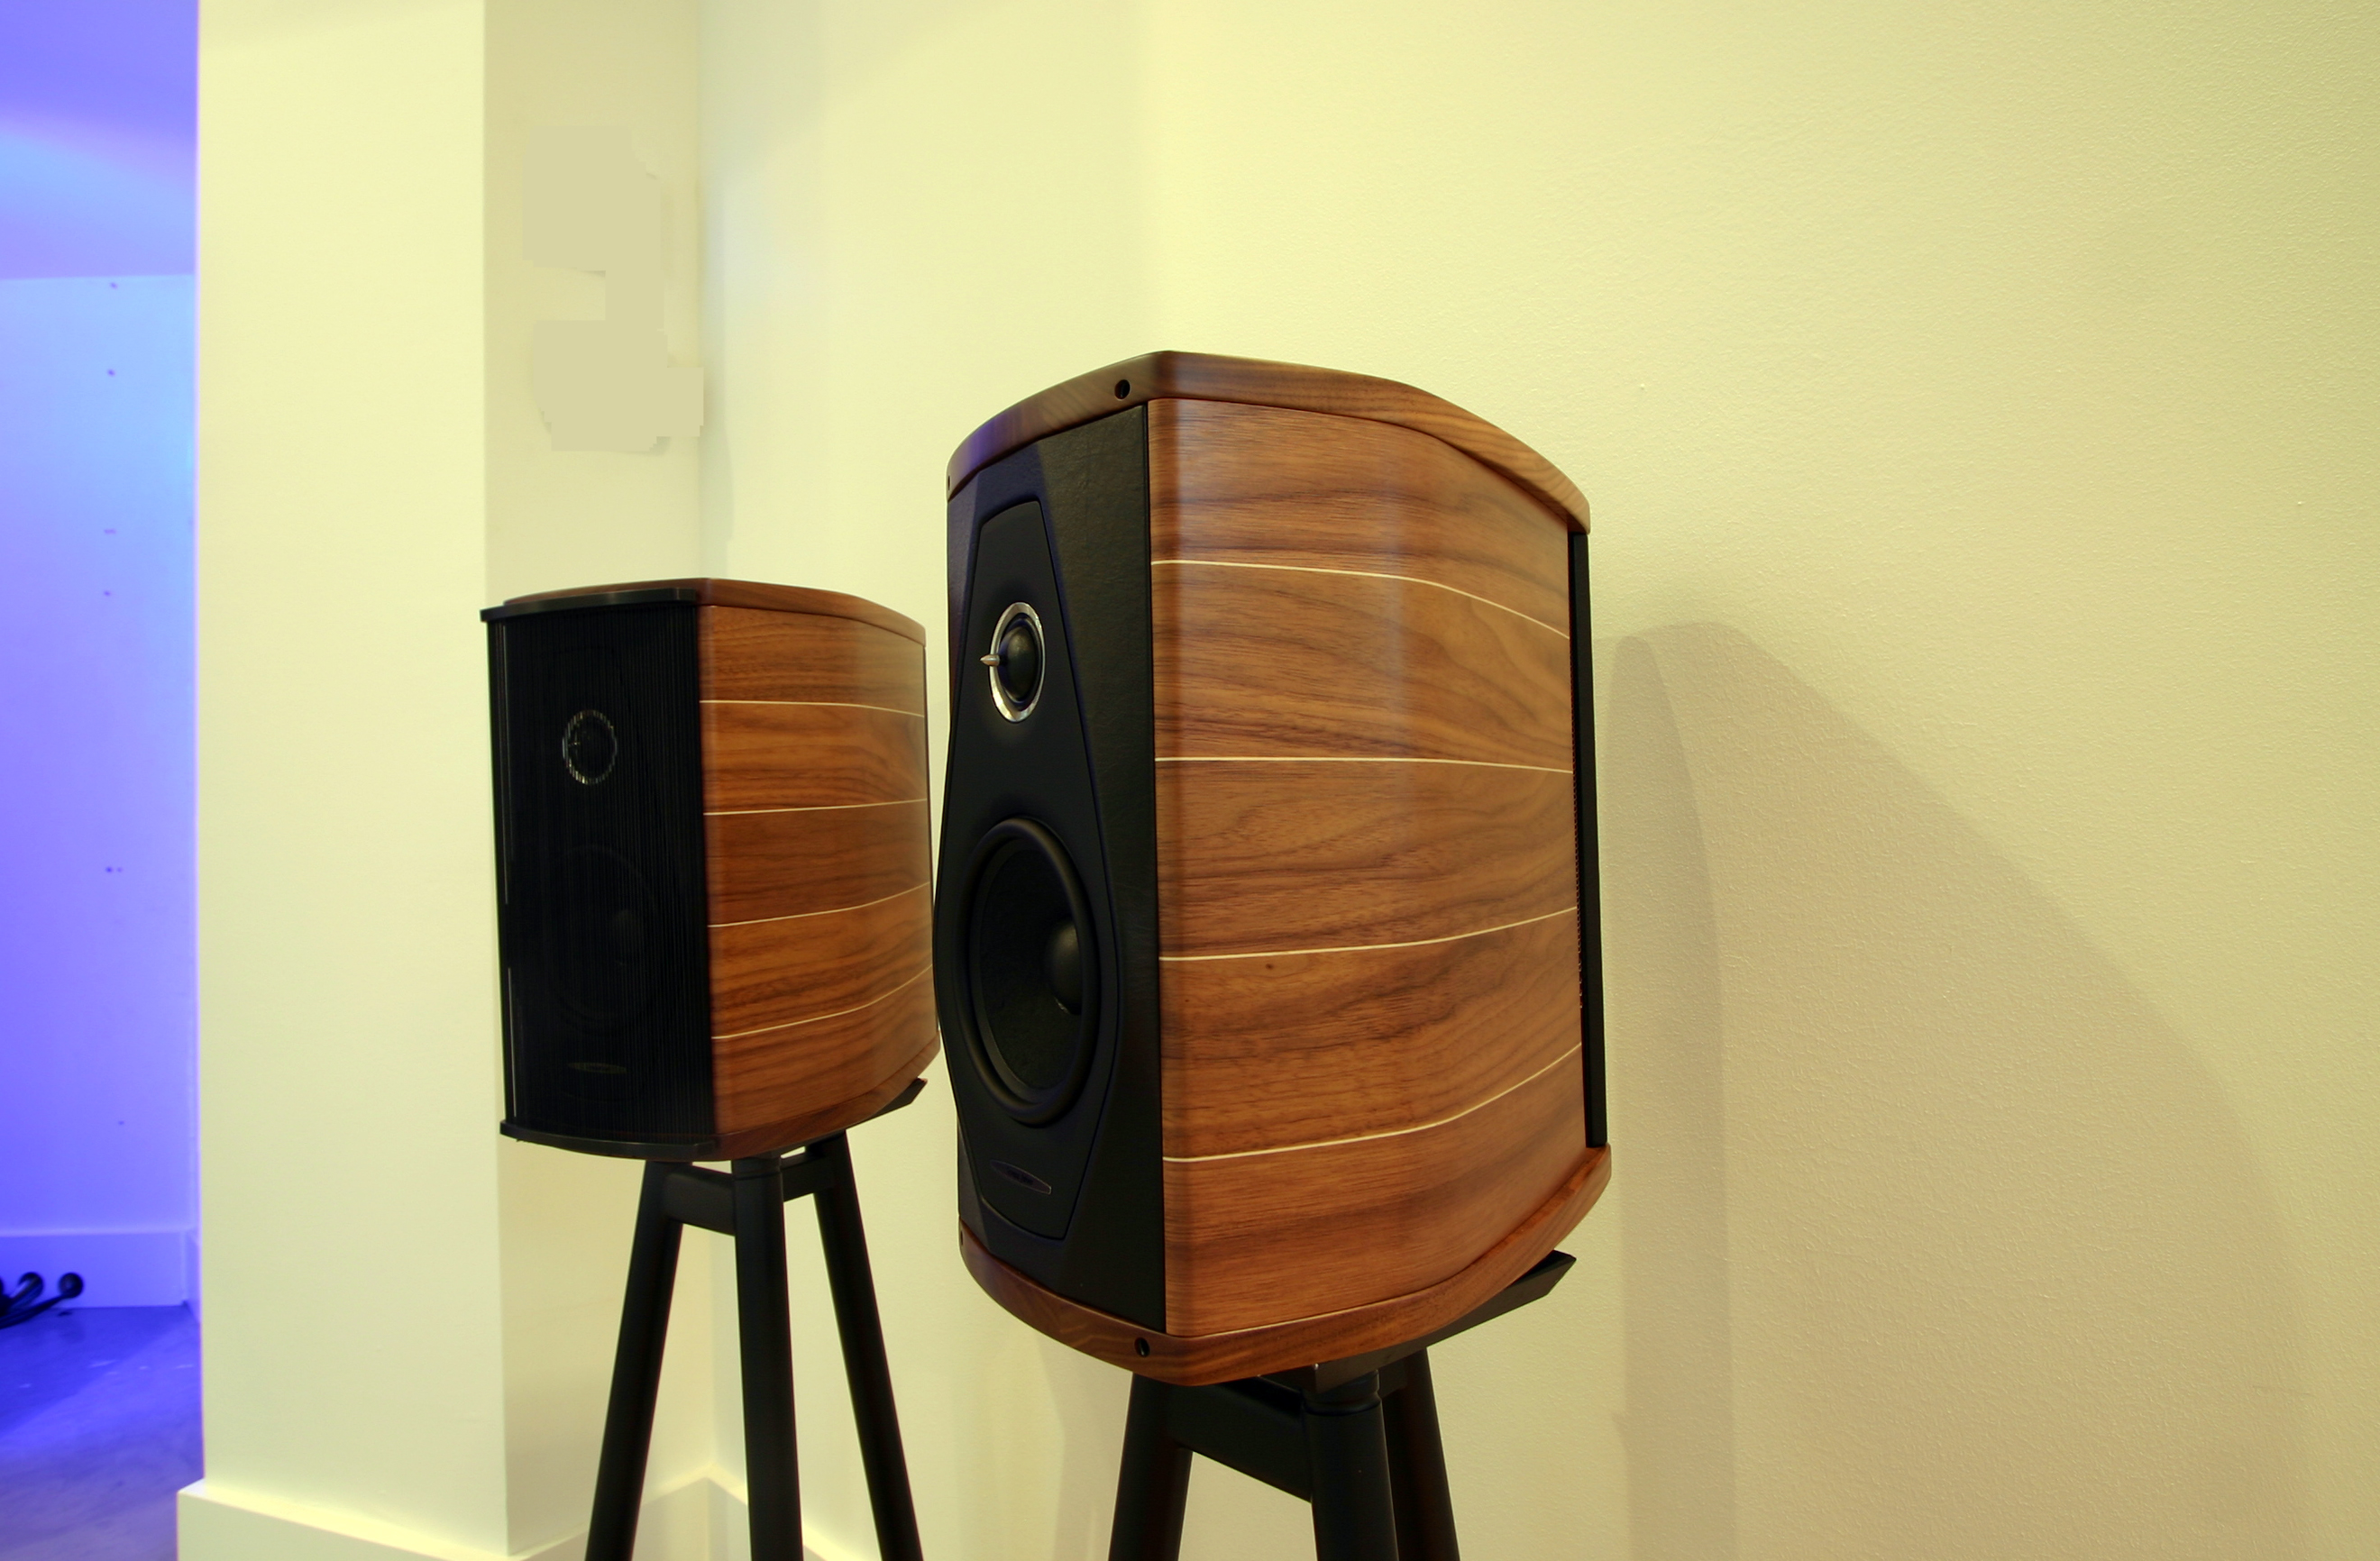 The SONUS FABER Difference